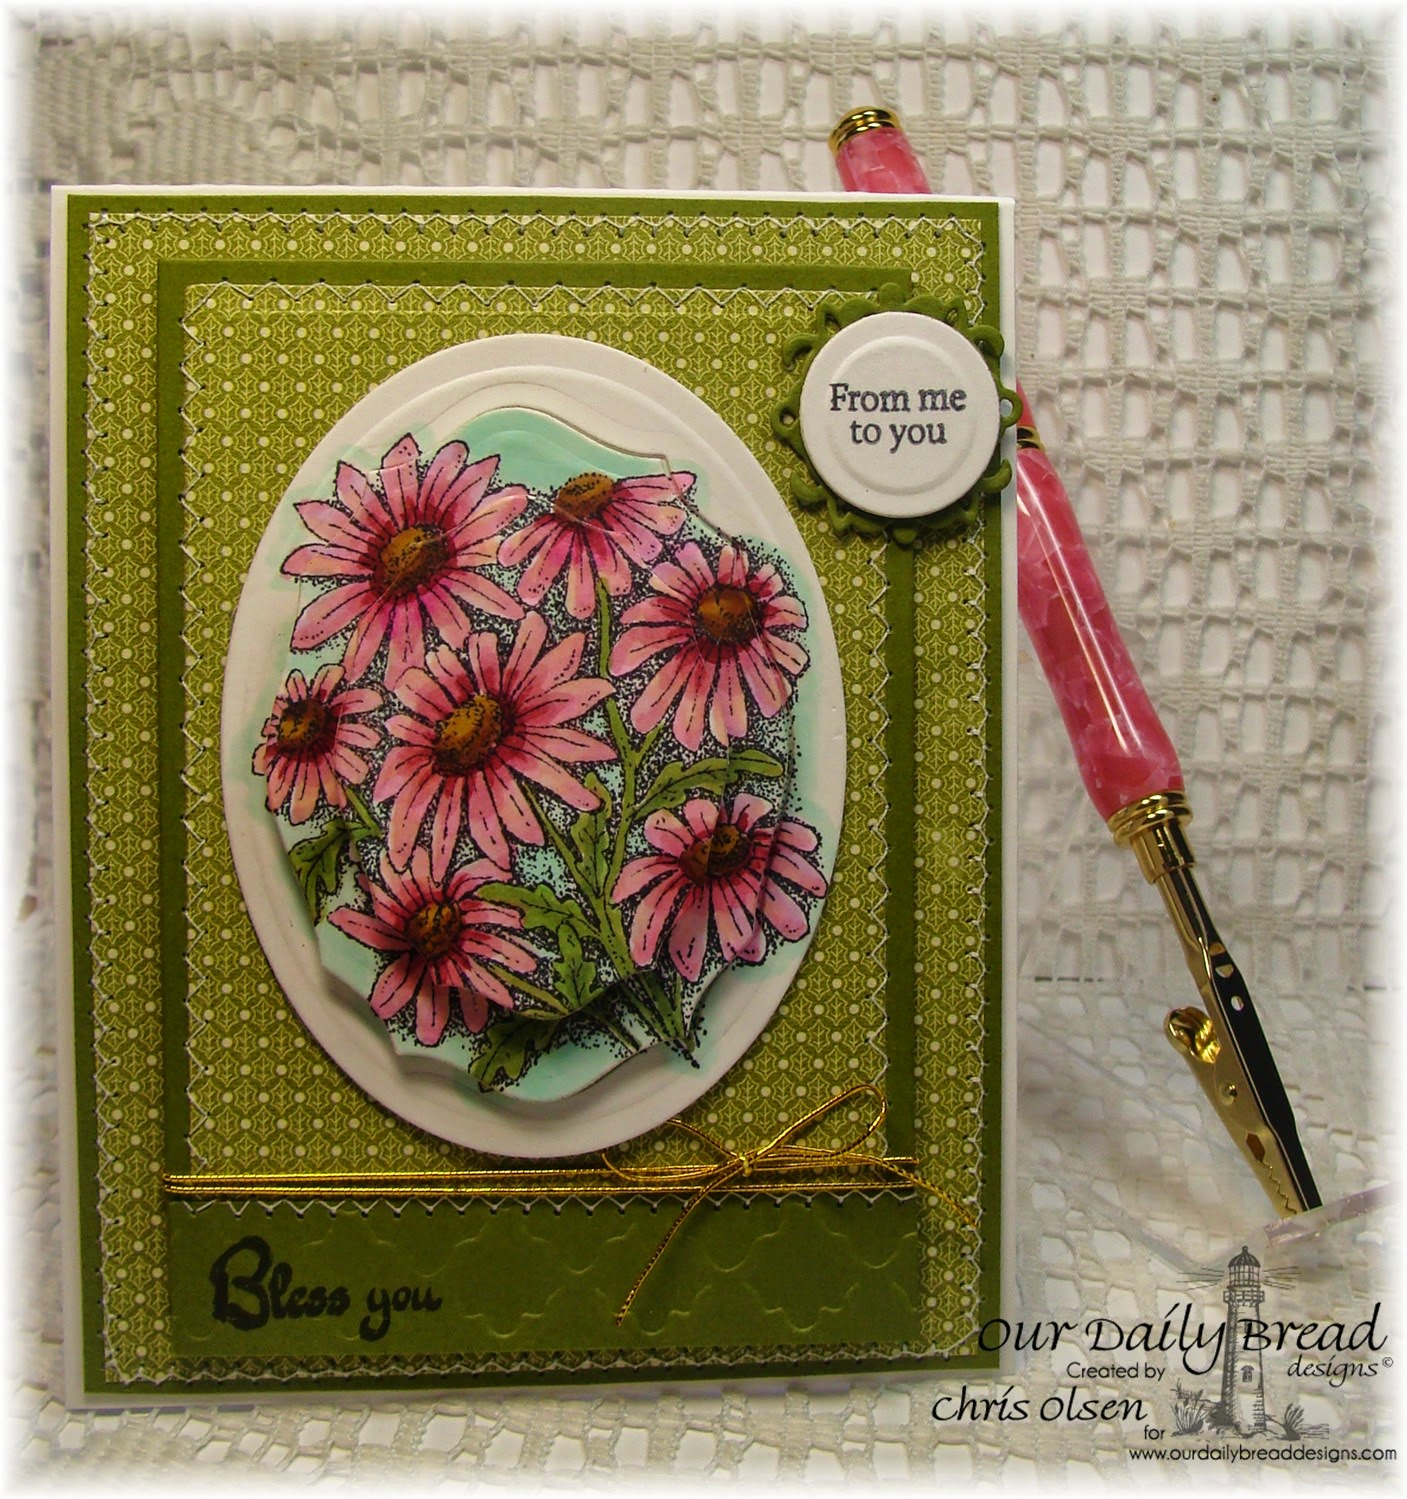 Our Daily Bread Designs, Life is a gift, Daisy, Mini Tag Sentiments, Elegant Ovals, ChiselinknMore, pens, designed by Chris Olsen